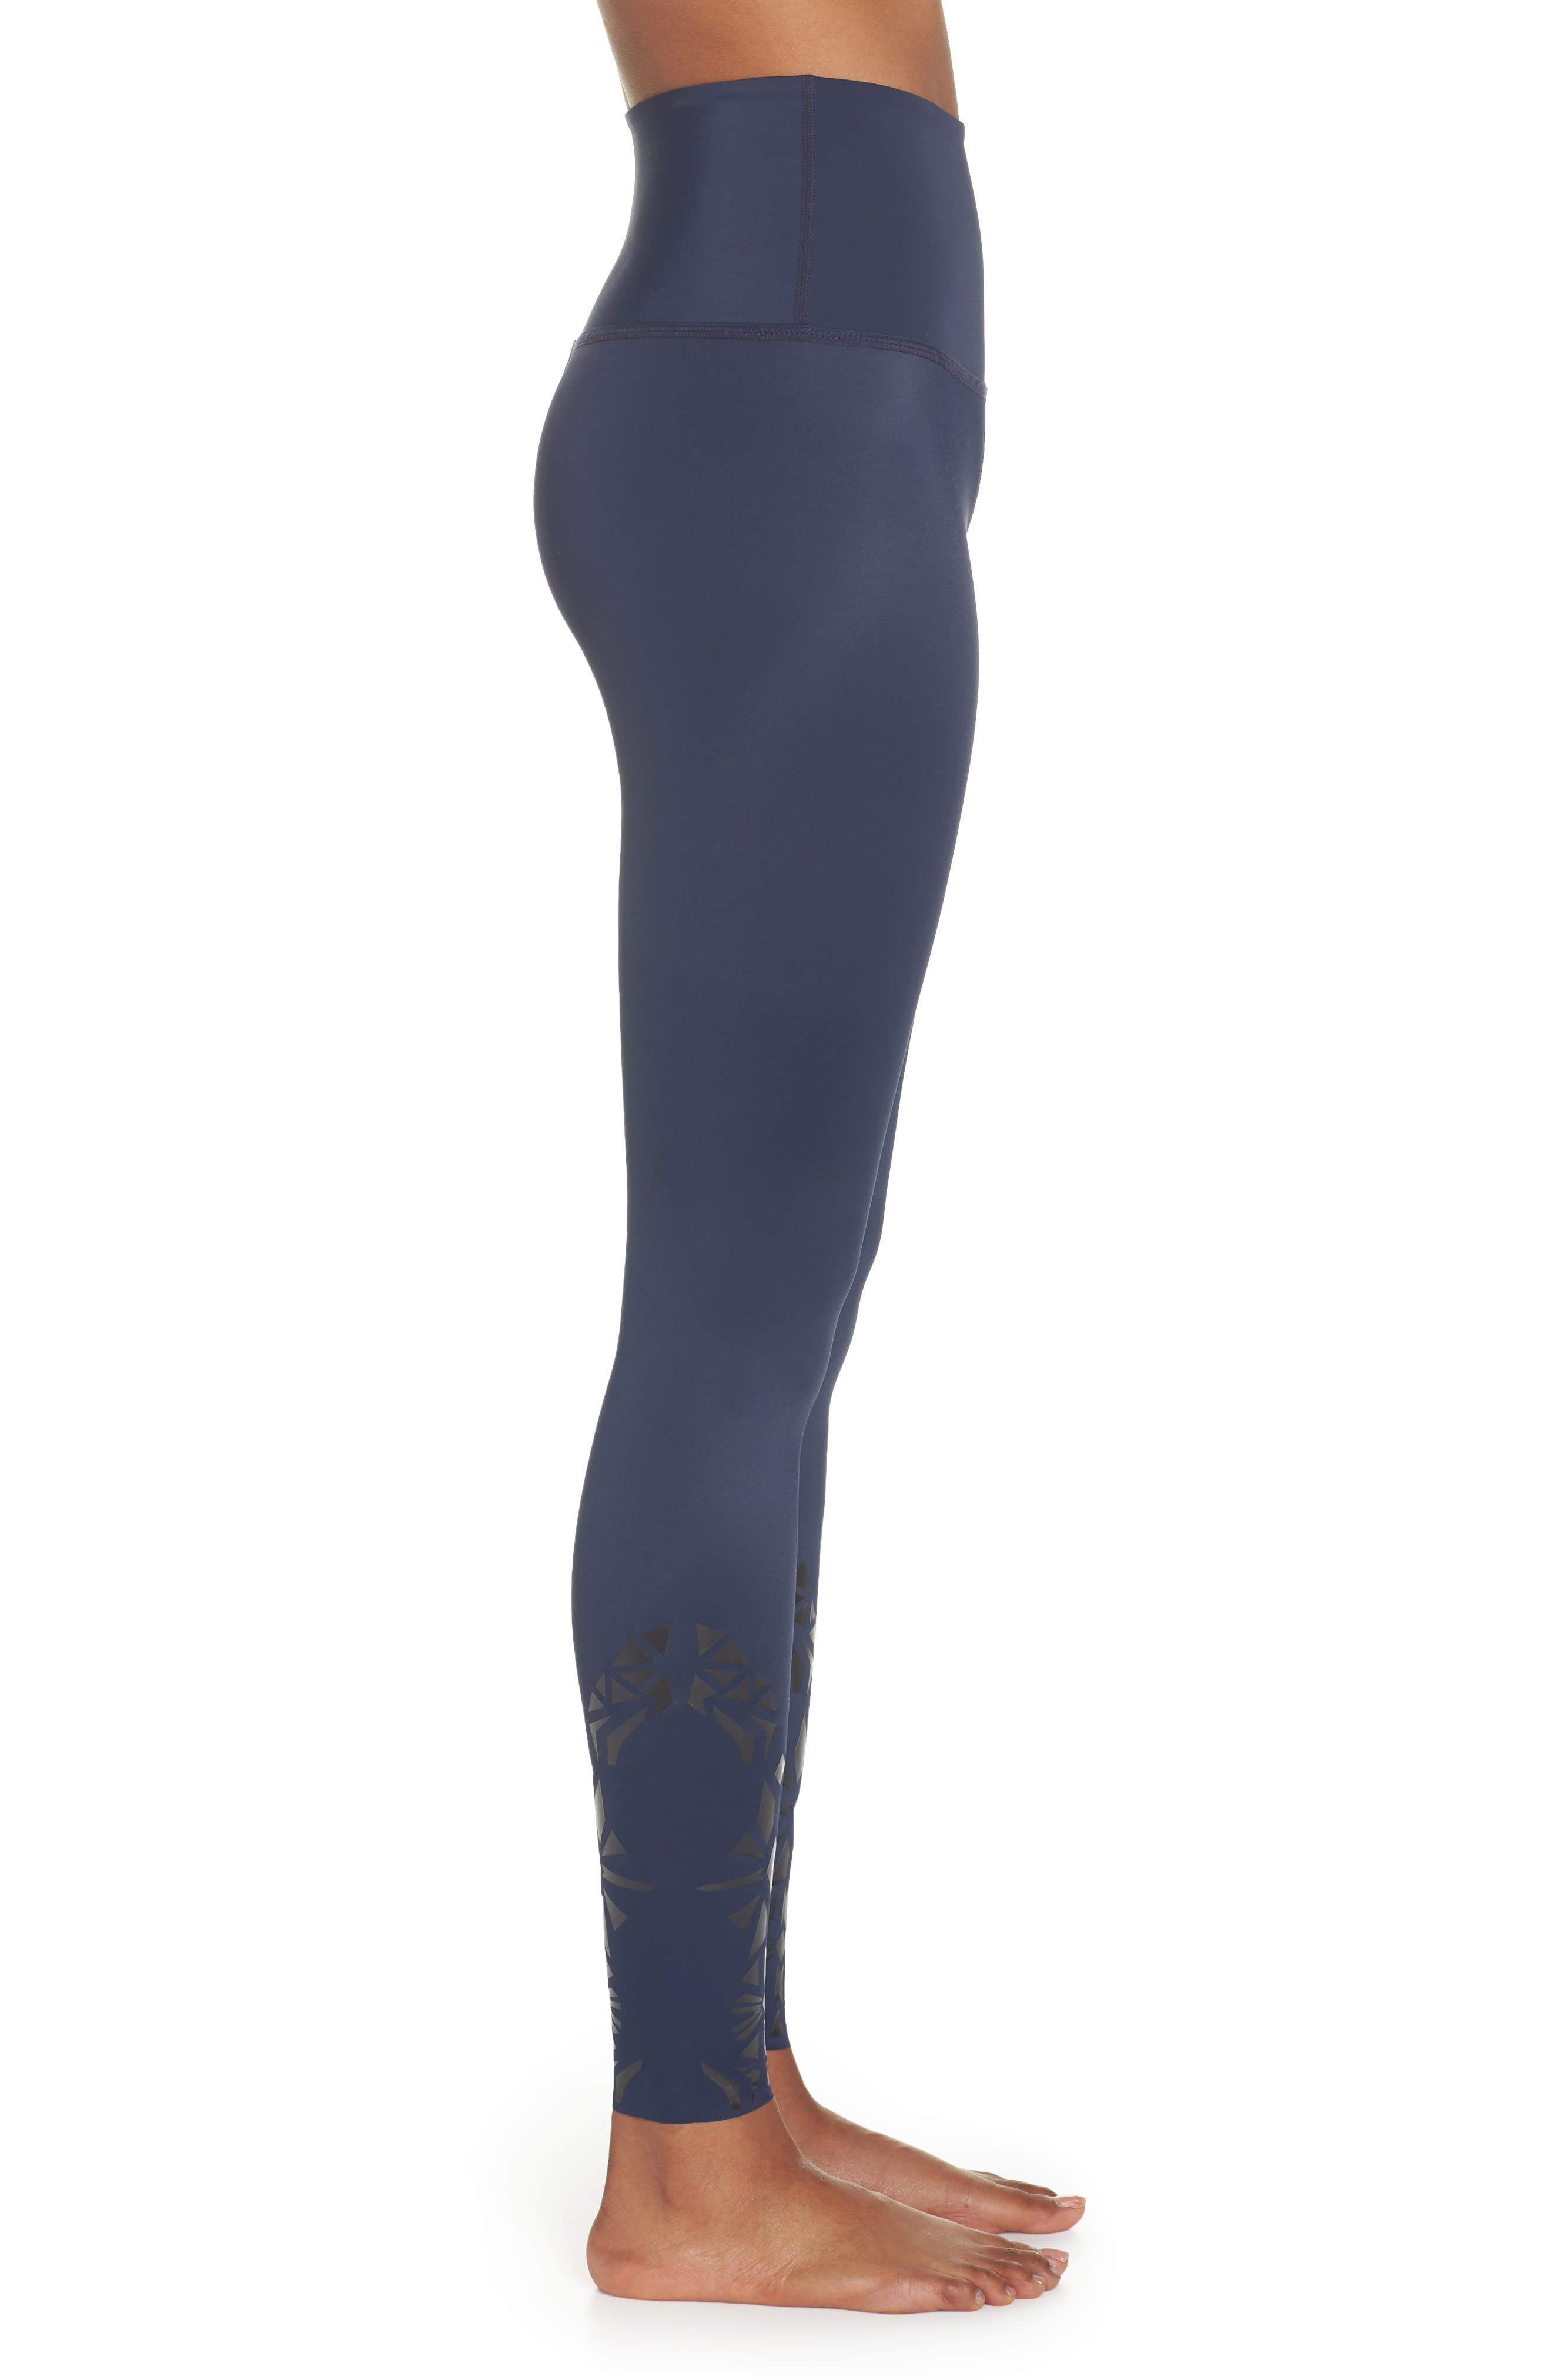 Calico High Waist Leggings,                             Alternate thumbnail 3, color,                             418